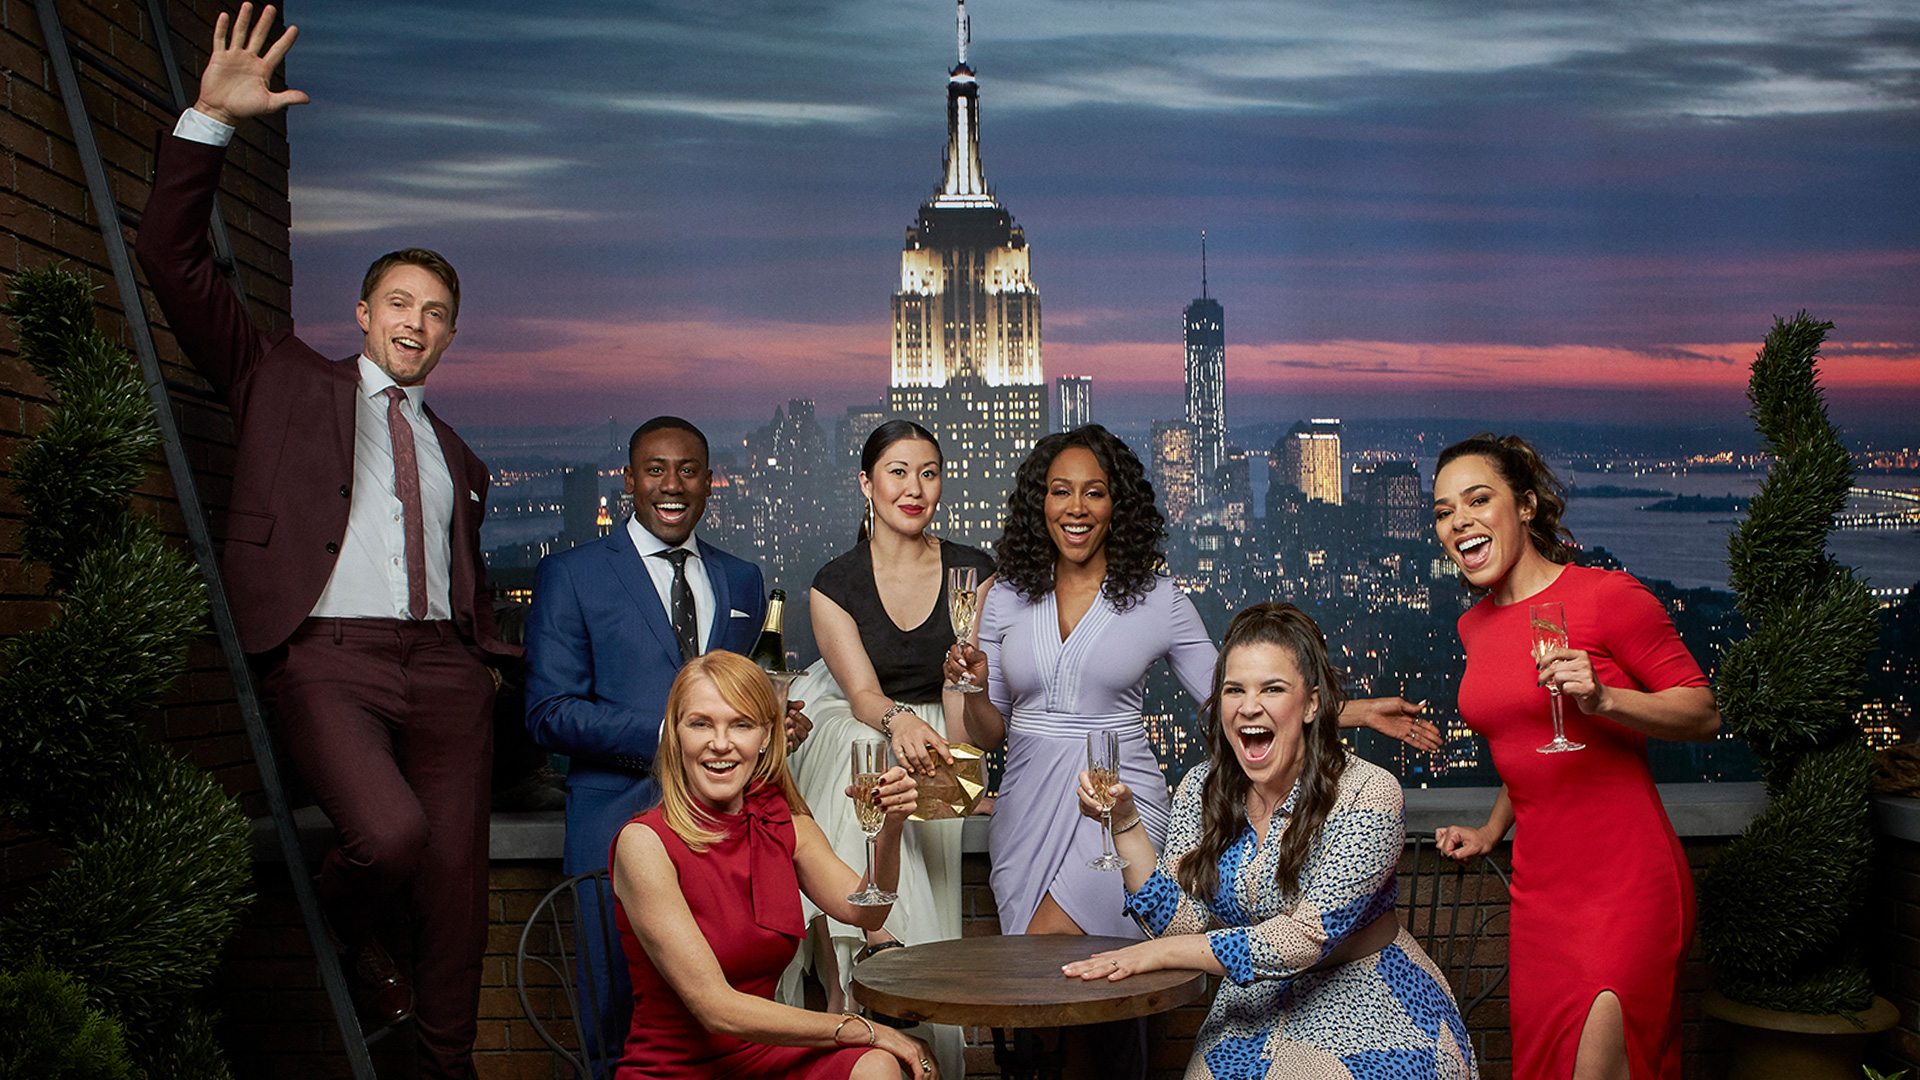 Wilson Bethel, J. Alex Brinson, Marg Helgenberger, Ruthie Ann Miles, Simone Missick, Lindsay Mendez, and Jessica Camacho